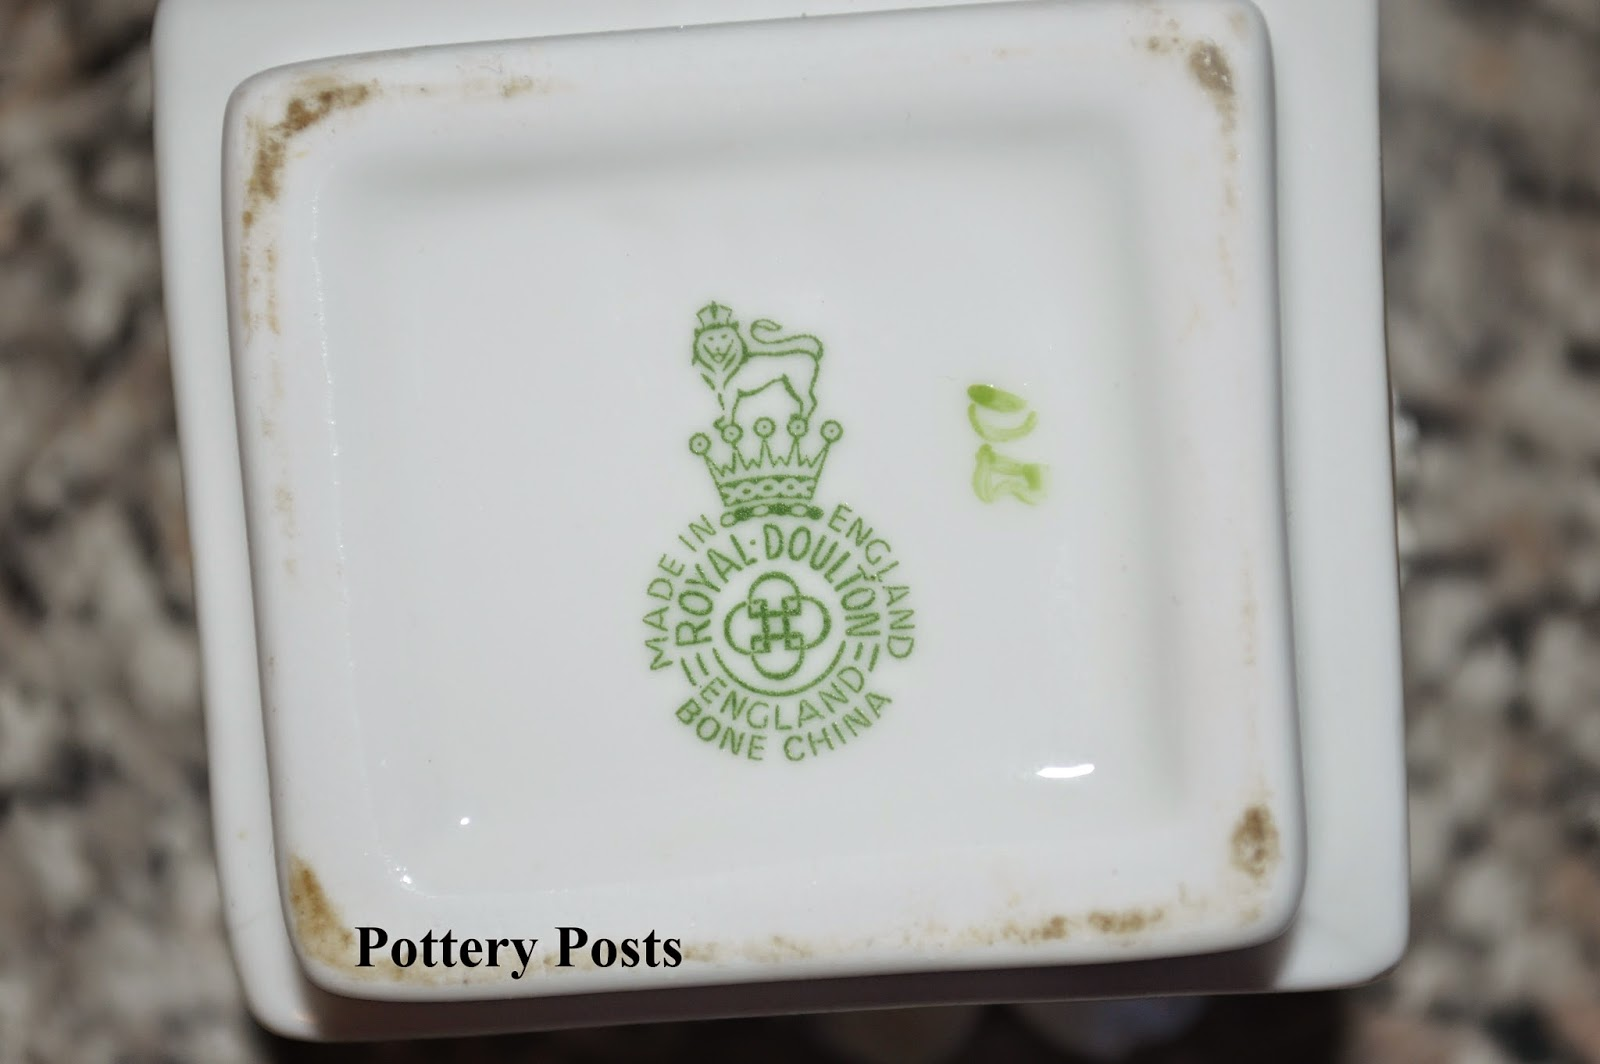 dating crown devon pottery This is an occasional blog about crown ducal pottery crown ducal backstamps part 1, 1915 i know i will make errors with the dating of these marks but if.